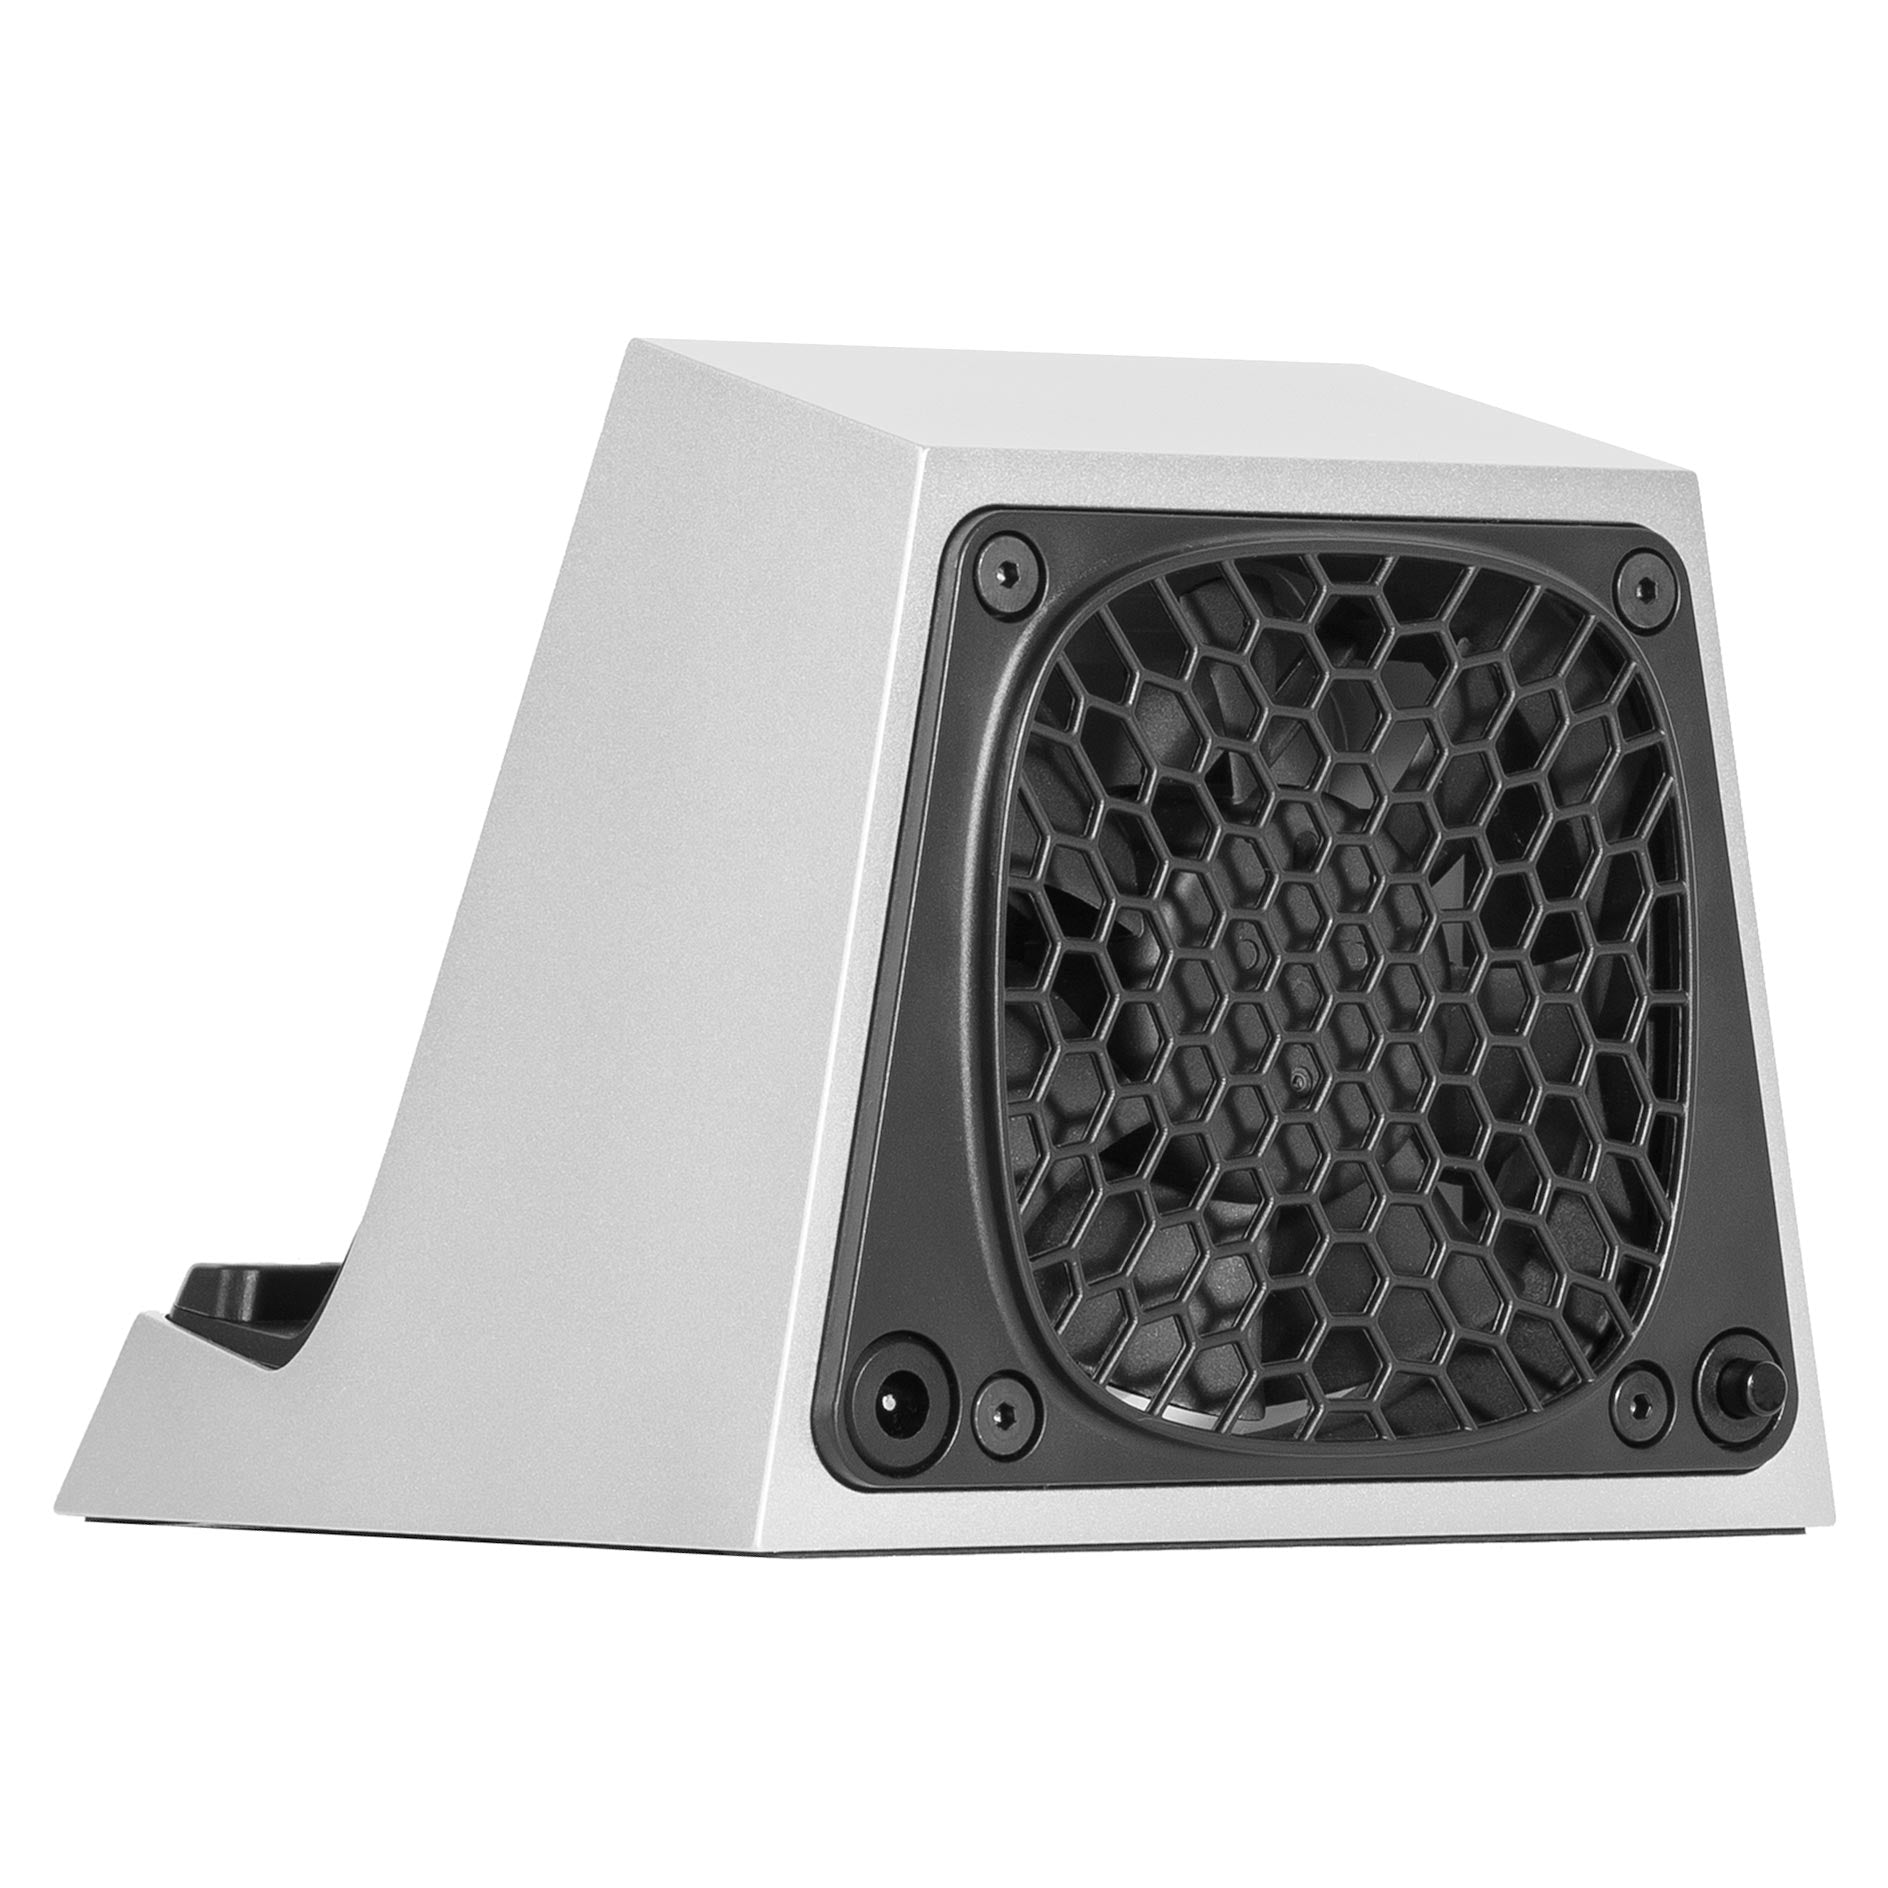 SVALT D Performance Cooling Dock back and side view